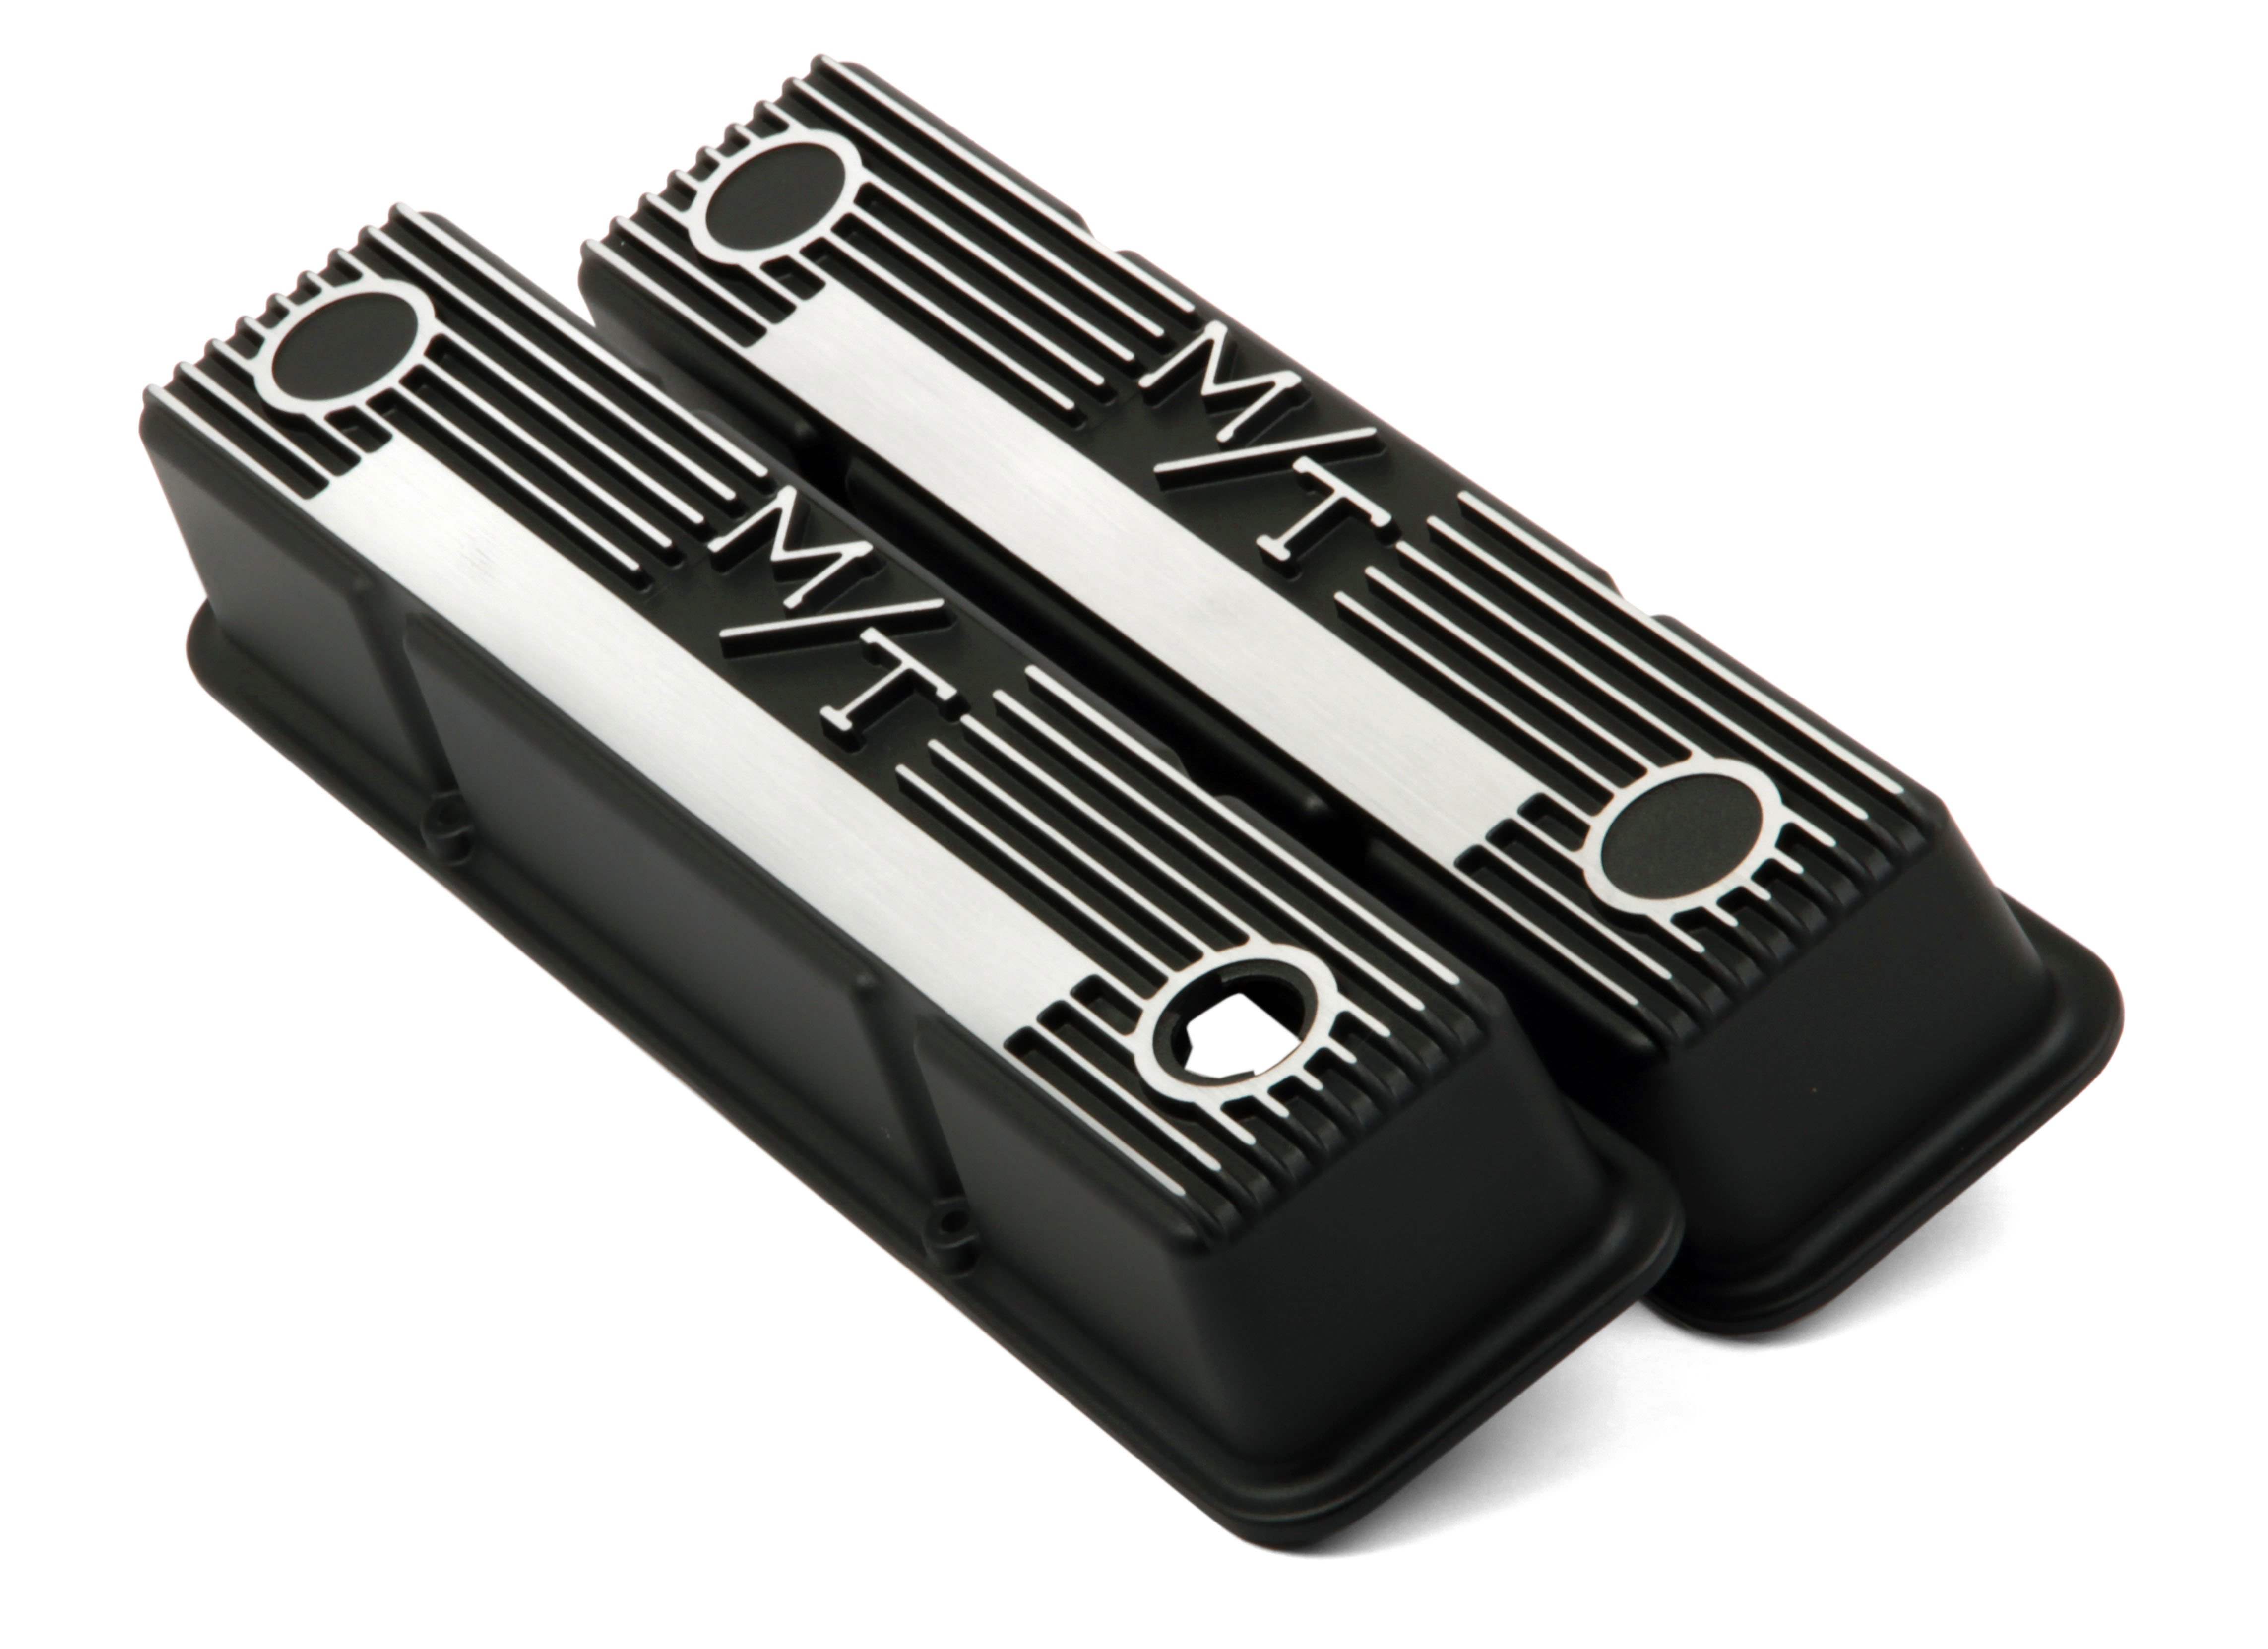 M/T Valve Covers for Small Block Chevy Engines - Satin Black